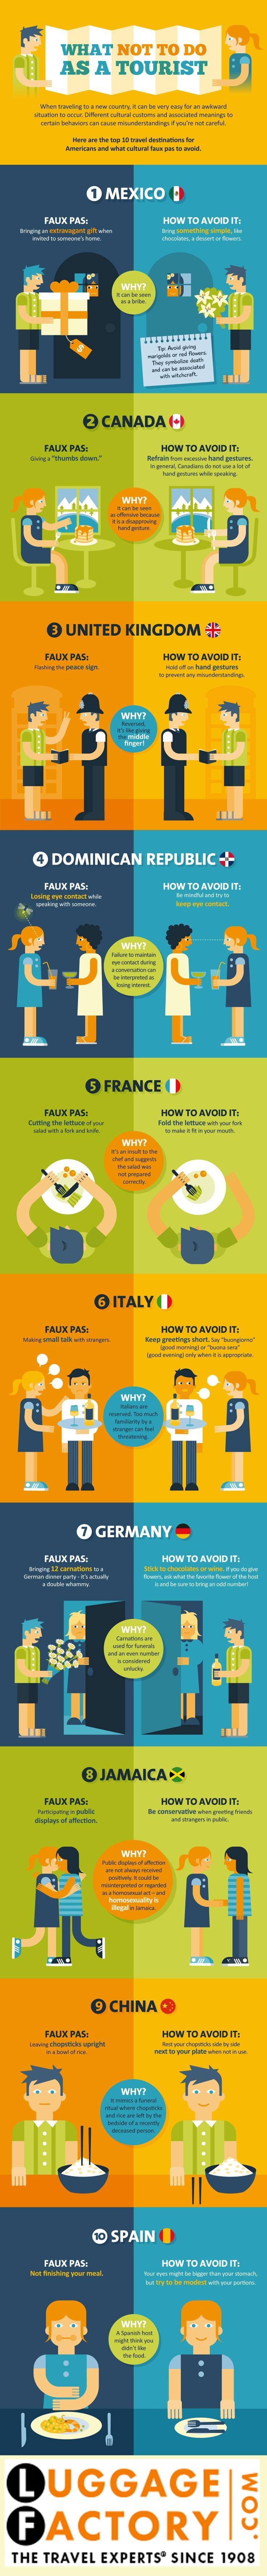 What Not To Do As A Tourist [Infographic] | Daily Infographic